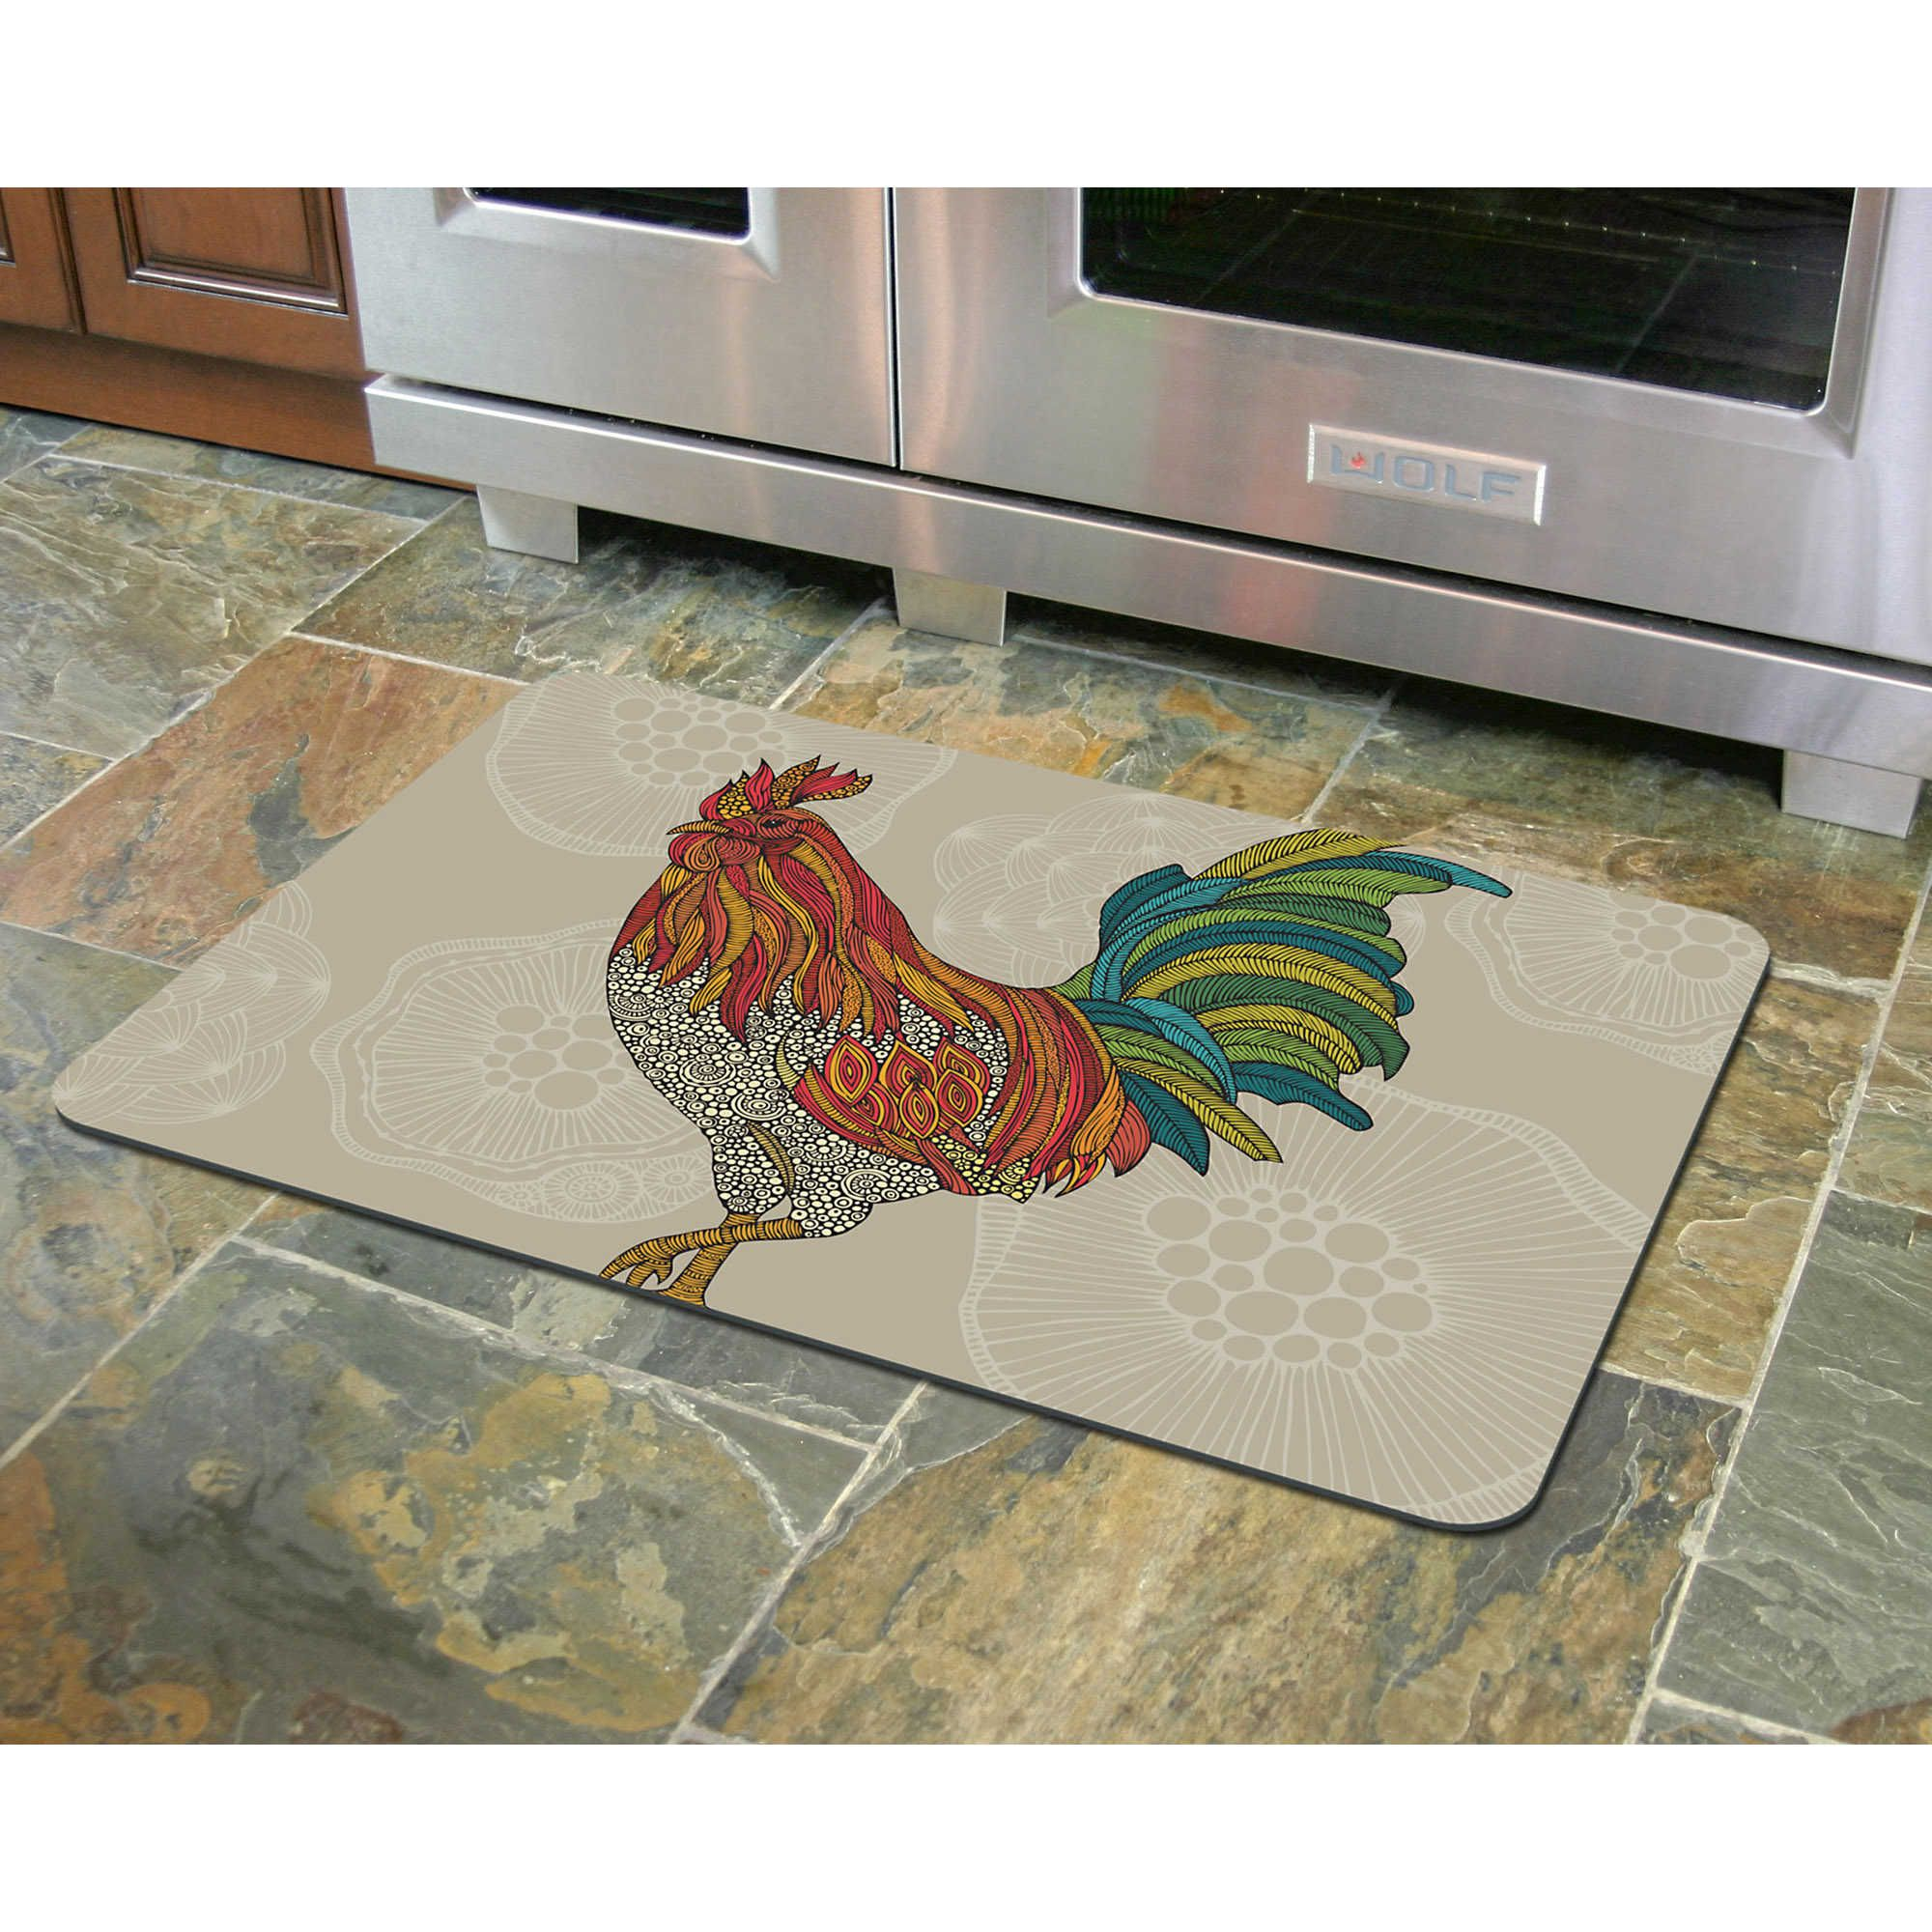 Bungalow Flooring 23Inch x 36Inch Rooster Kitchen Mat